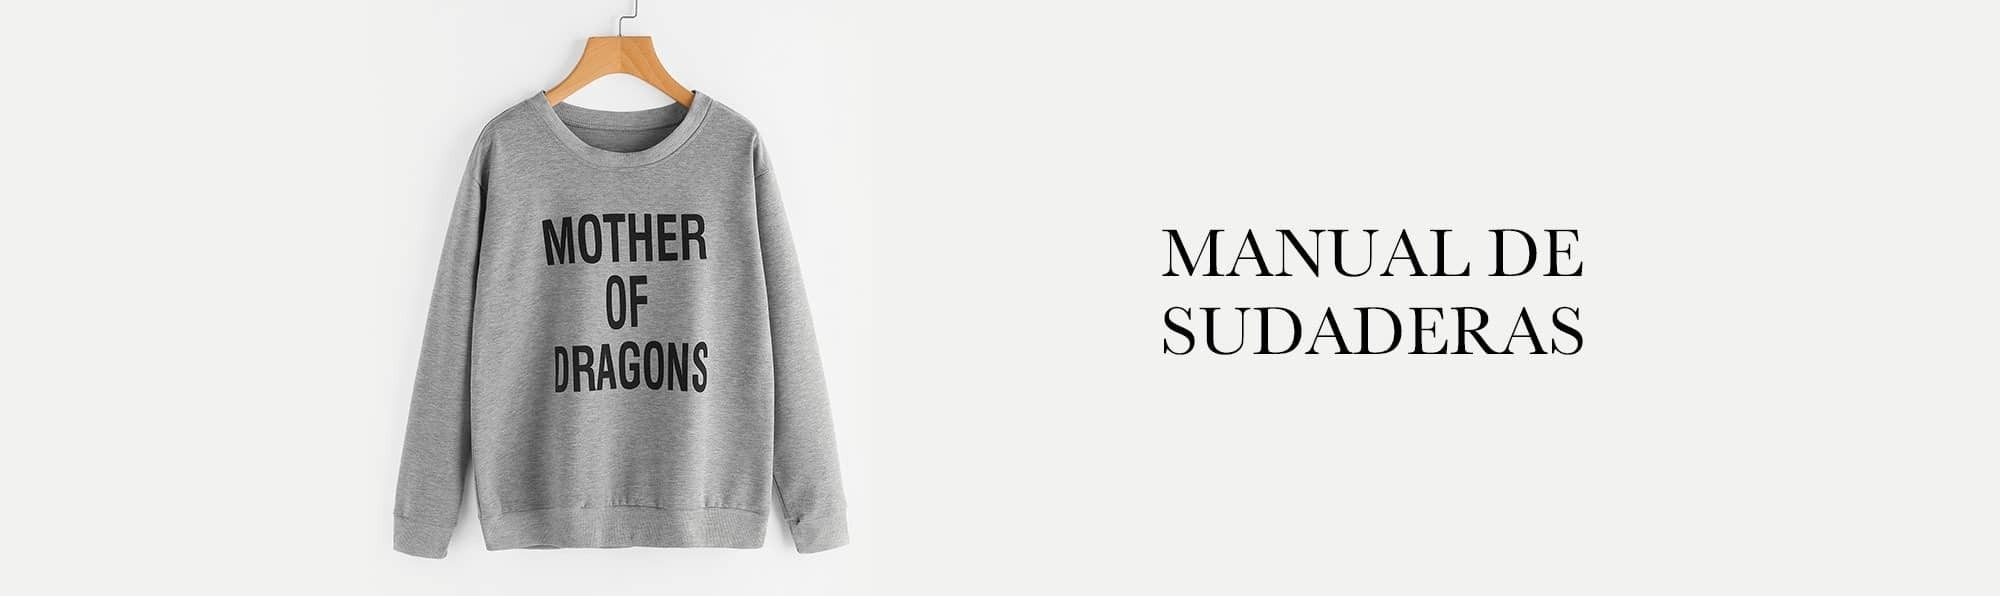 ES Manual De Sudaderas 20171016 A